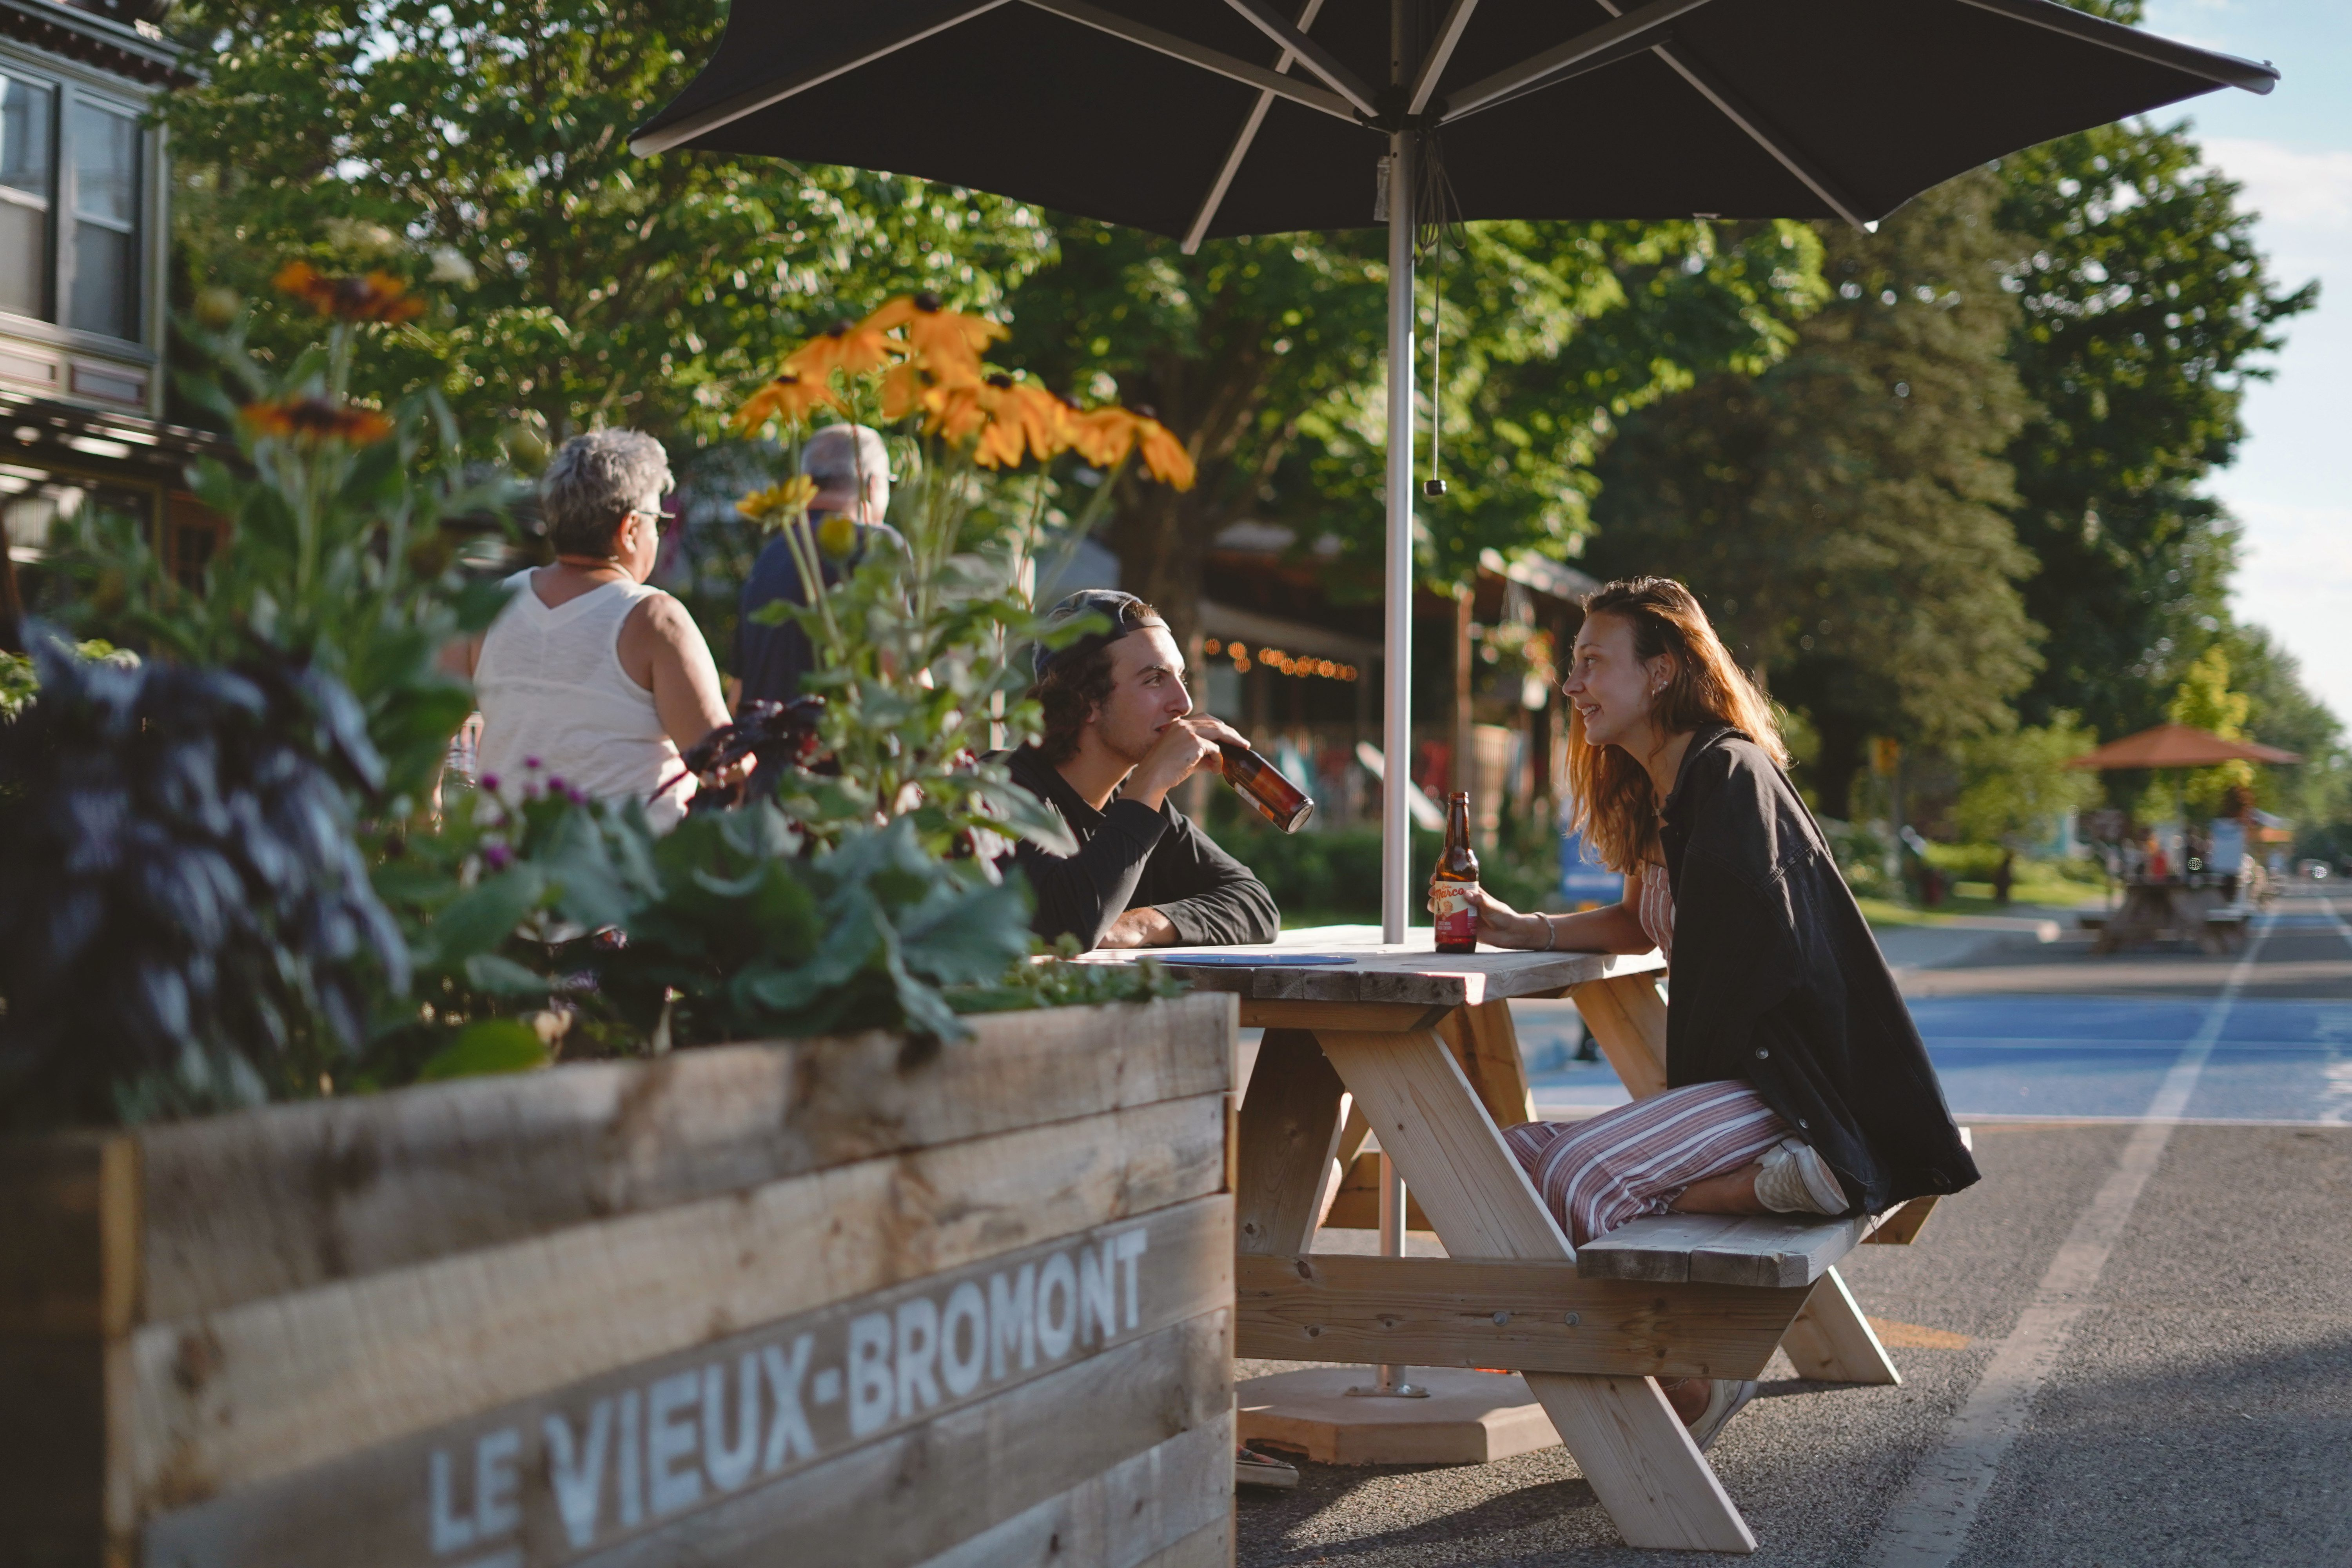 4 gastronomic stops to discover in Brome-Missisquoi this summer